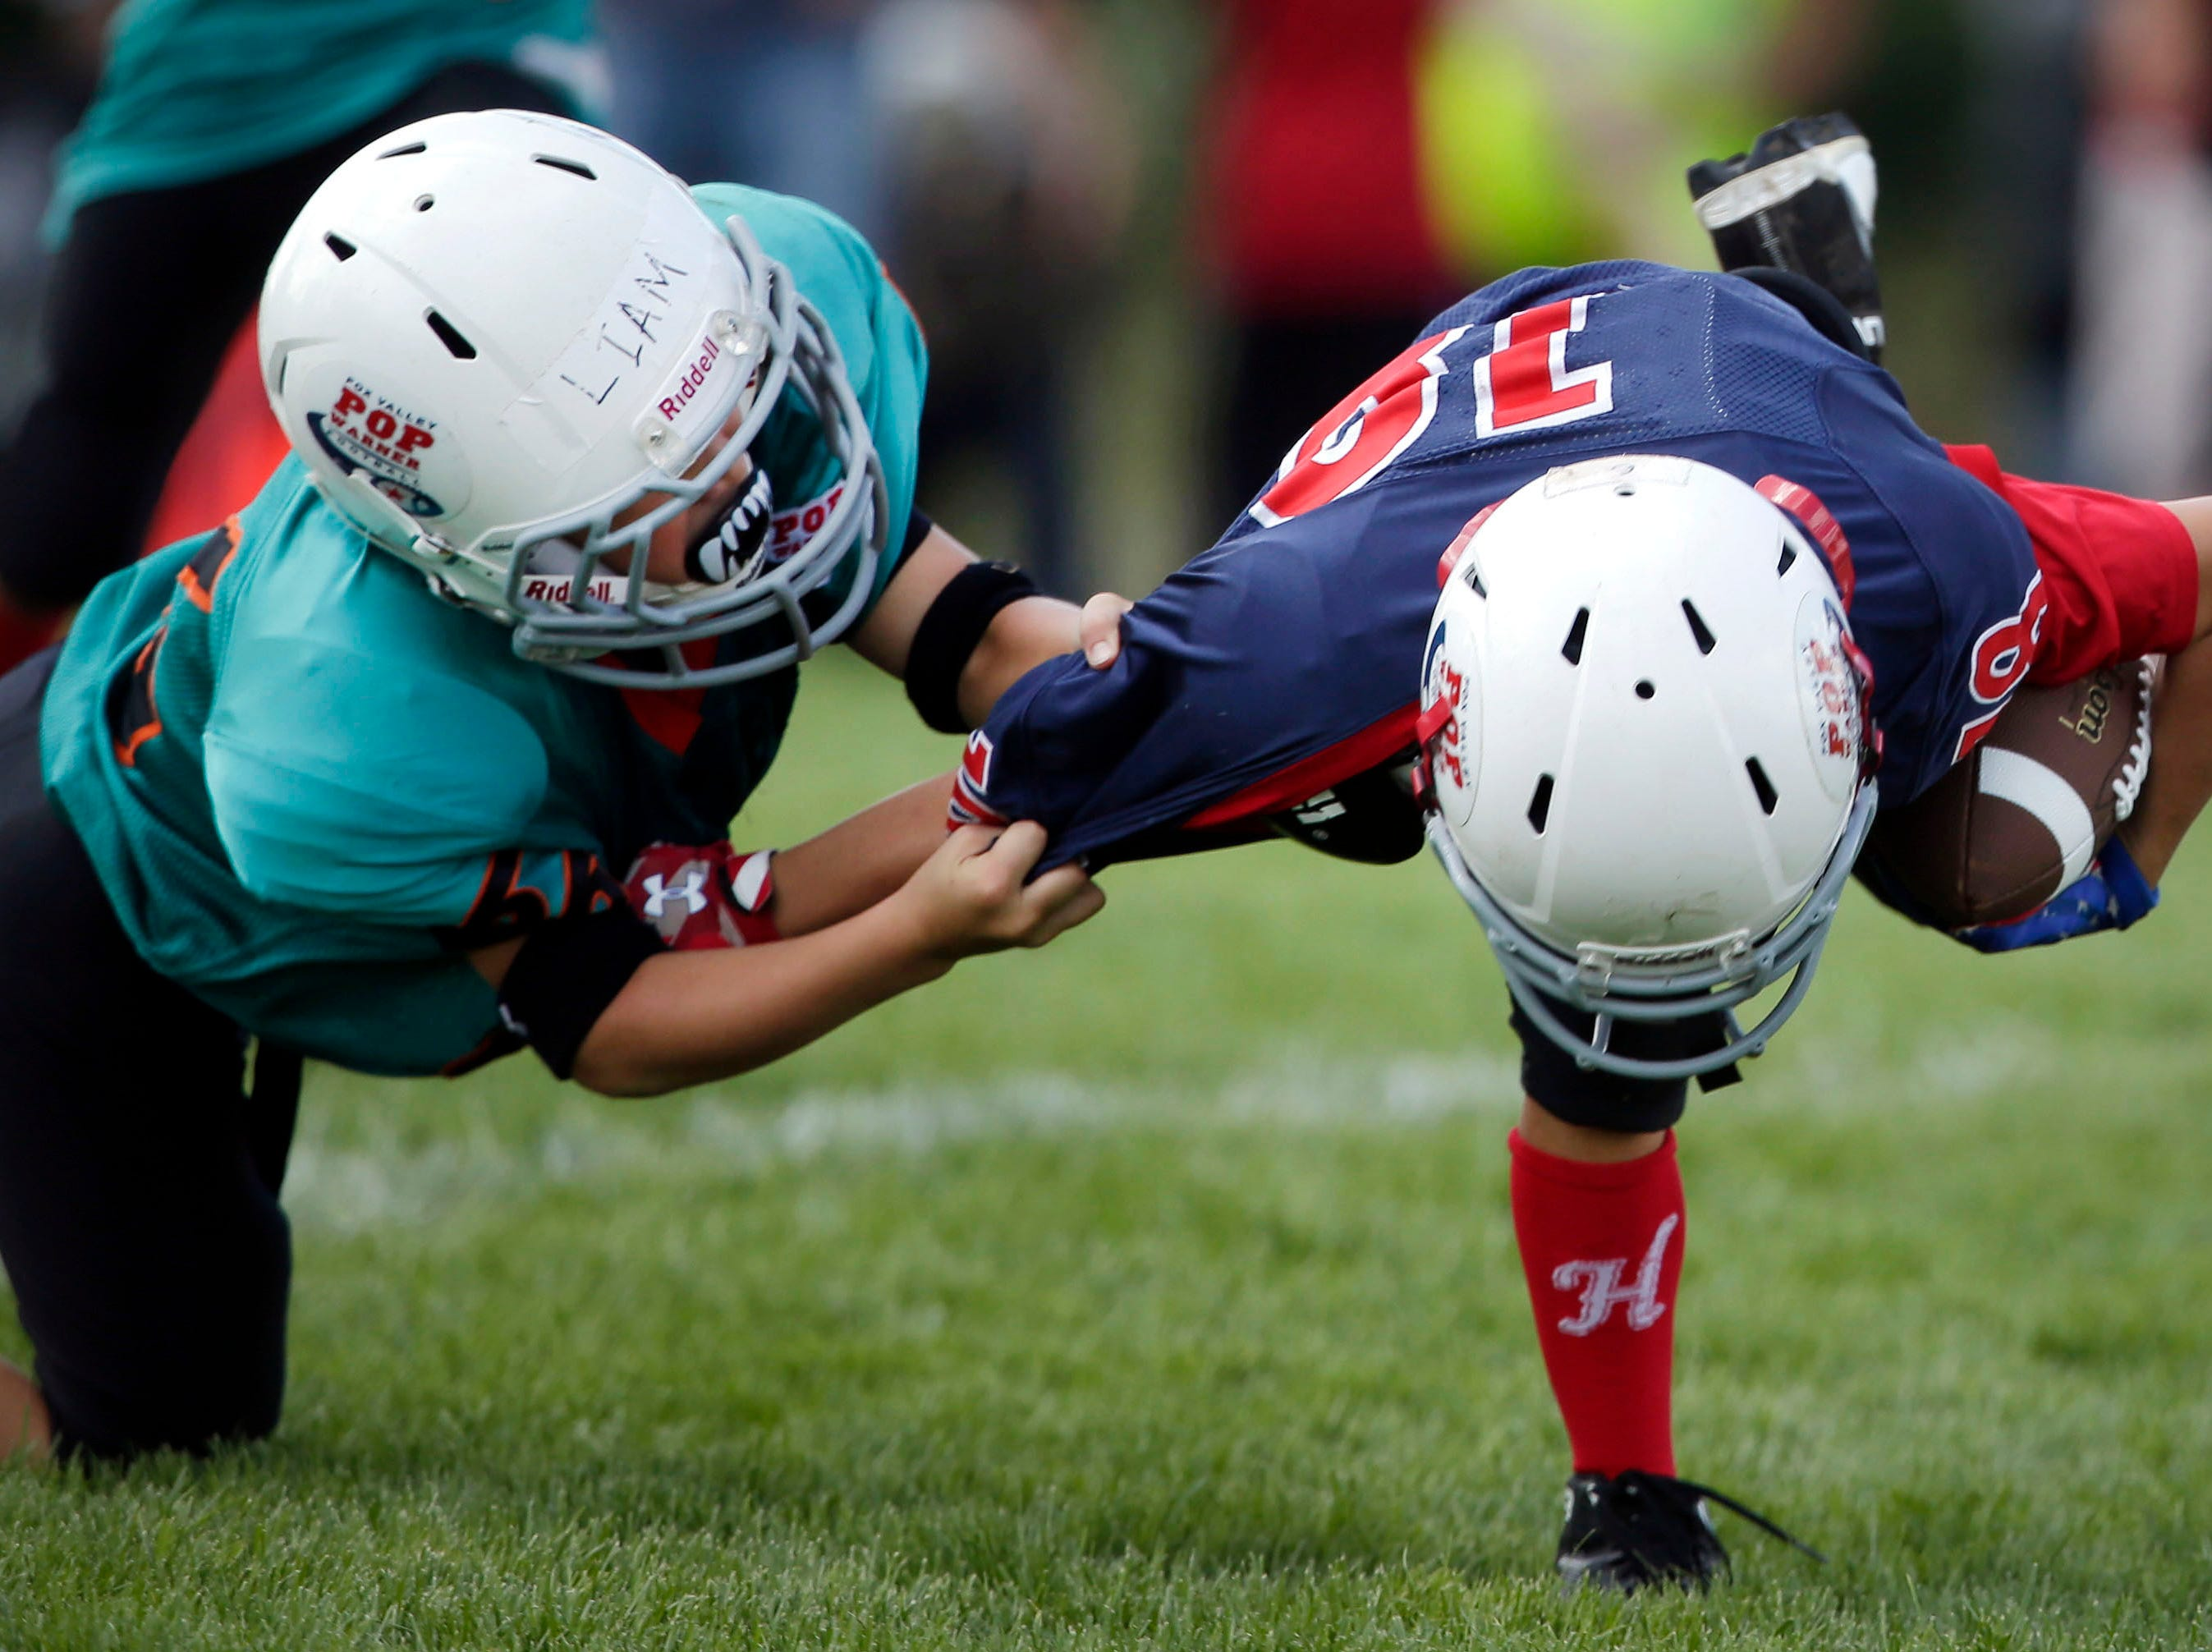 Liam Kelley of the Rockets tackles a Patriots player as Fox Valley Pop Warner Football opens the season Saturday, September 8, 2018, at Plamann Park in Grand Chute, Wis.